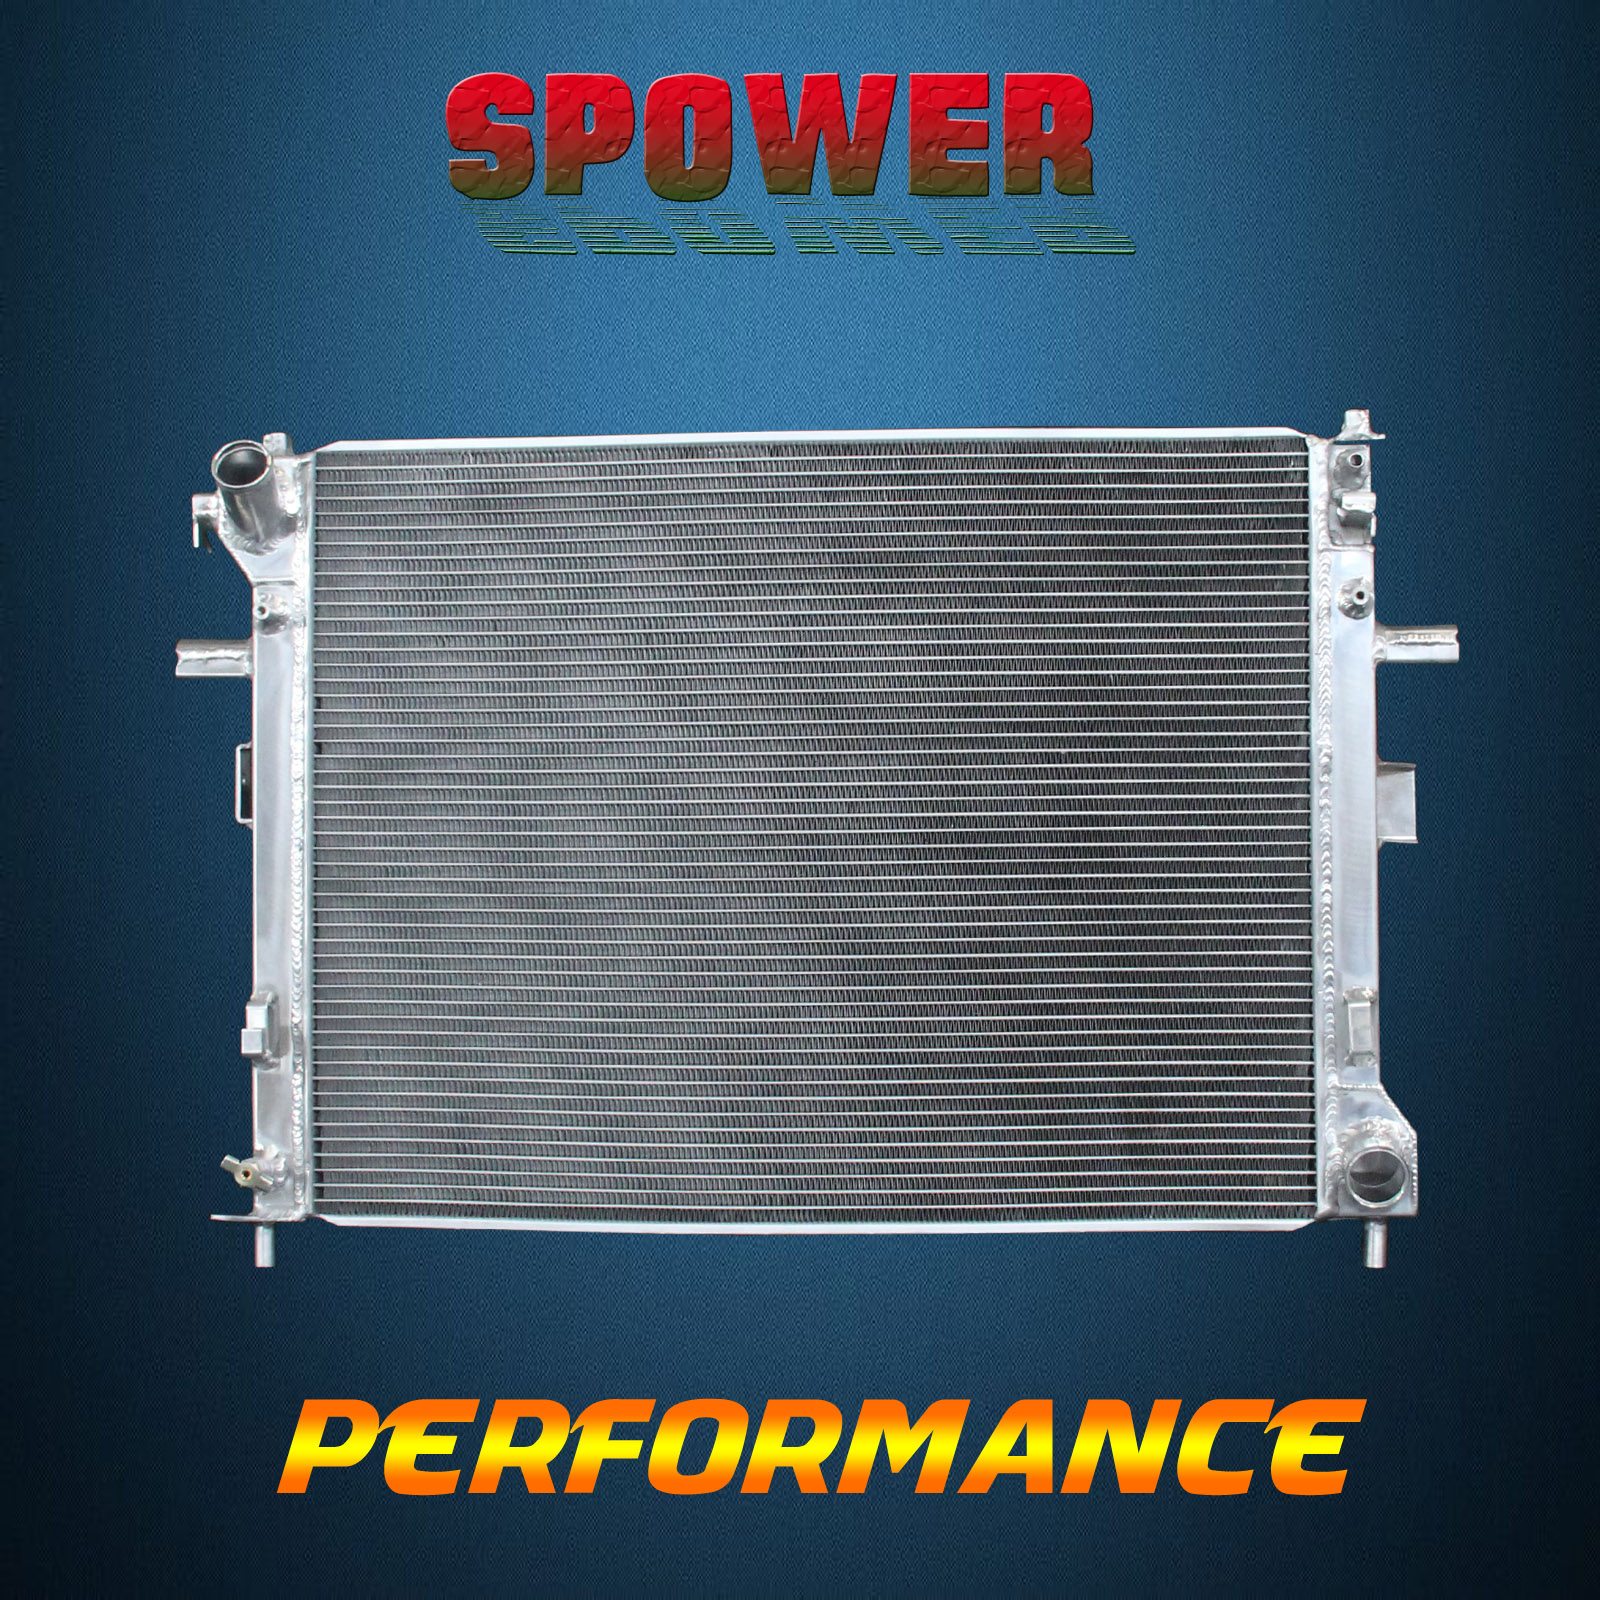 Aluminum Radiator For Ford Crown Victoria Lincoln Town Car V8 4.6L ...